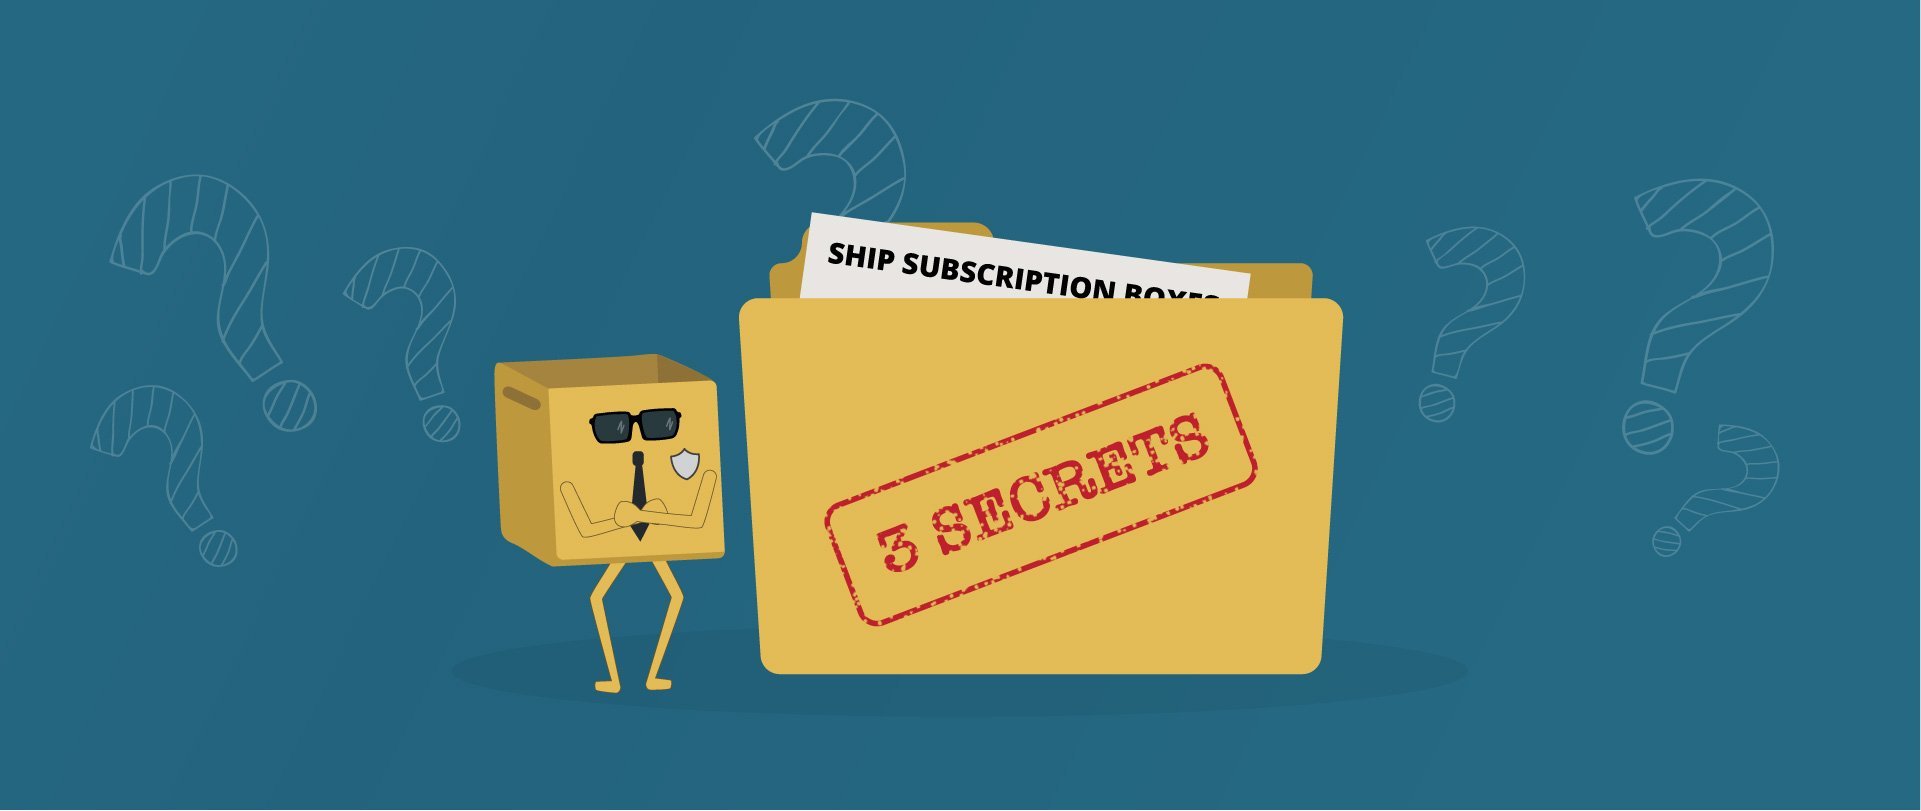 3 Secrets to Cheaper Subscription Box Shipping